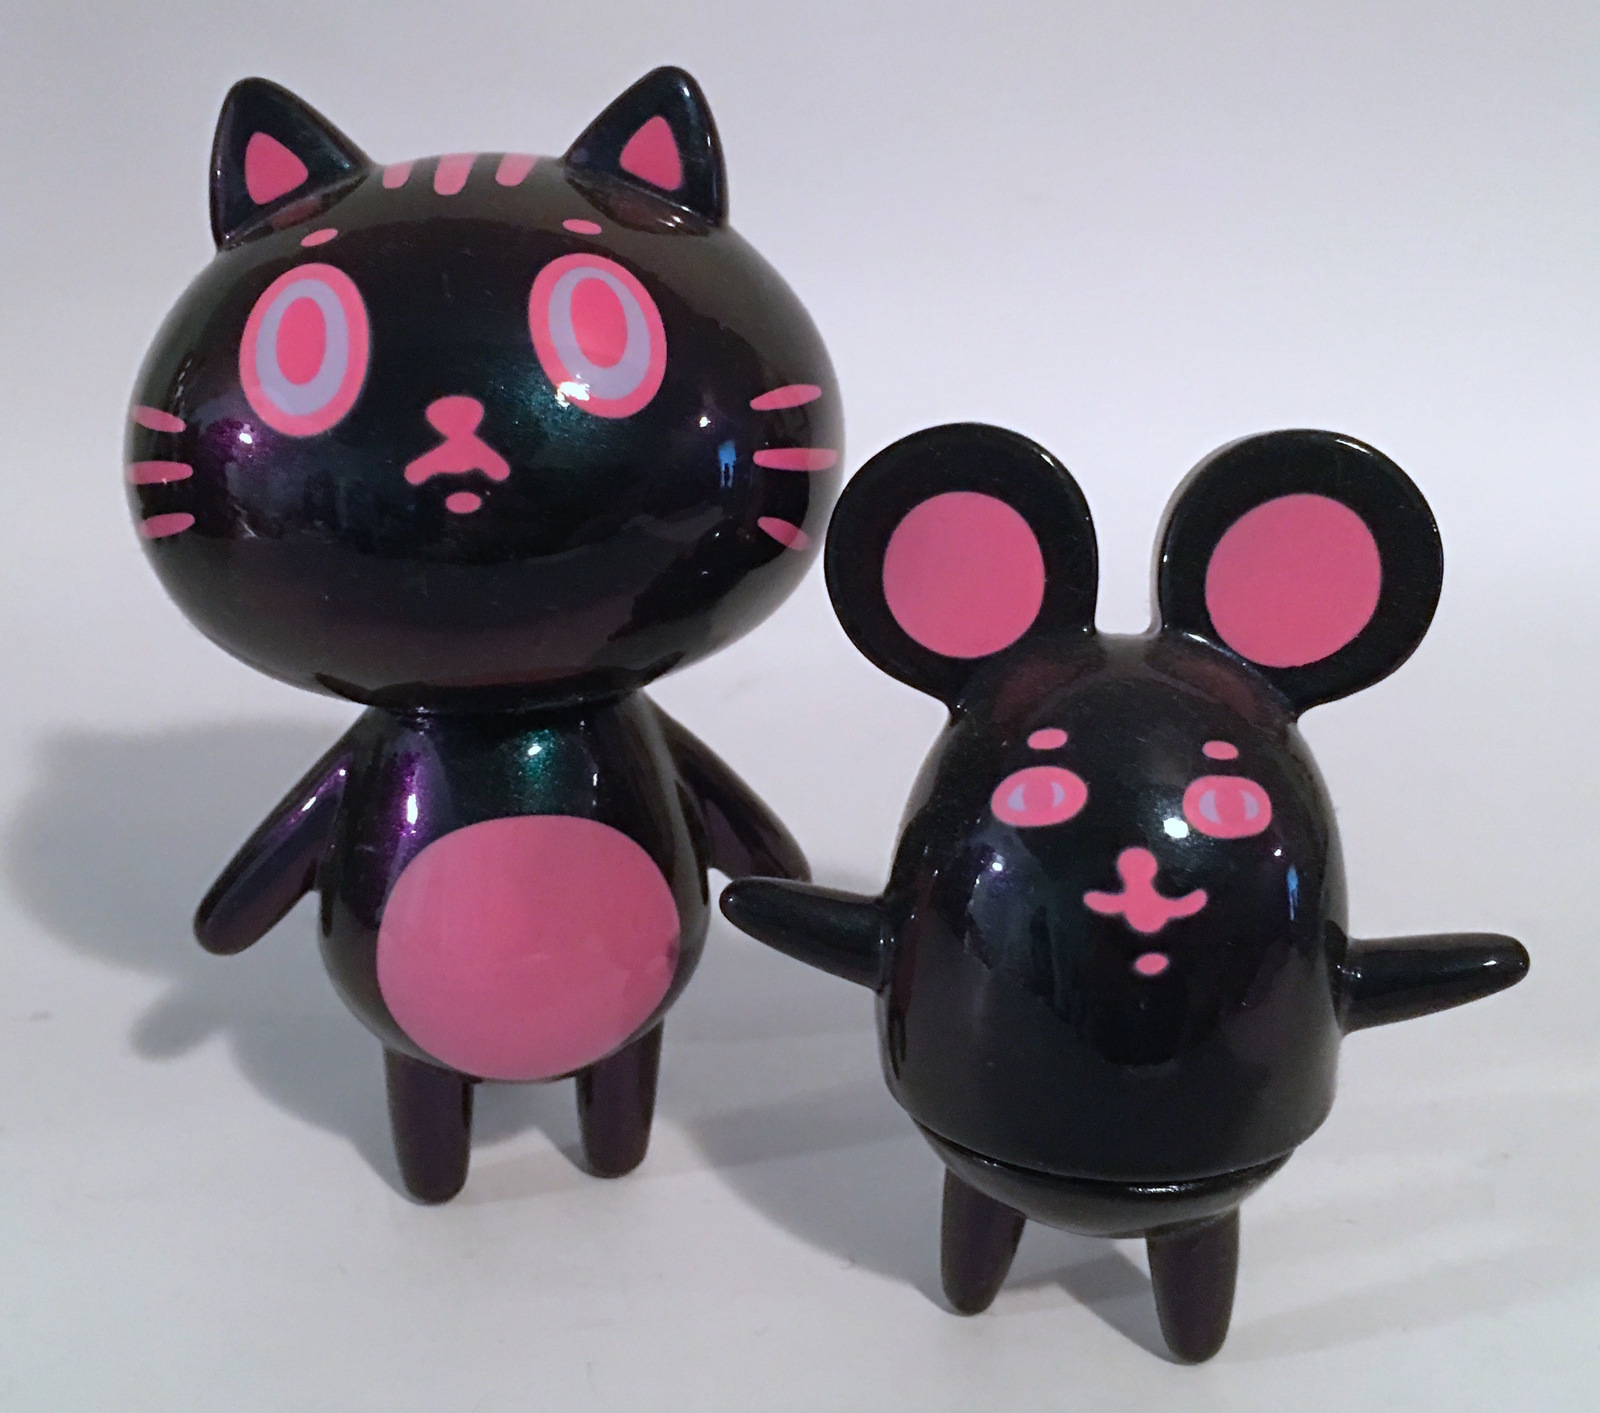 Baketan Pink Metallic Cat and Mouse Set RARE and LIMITED Set